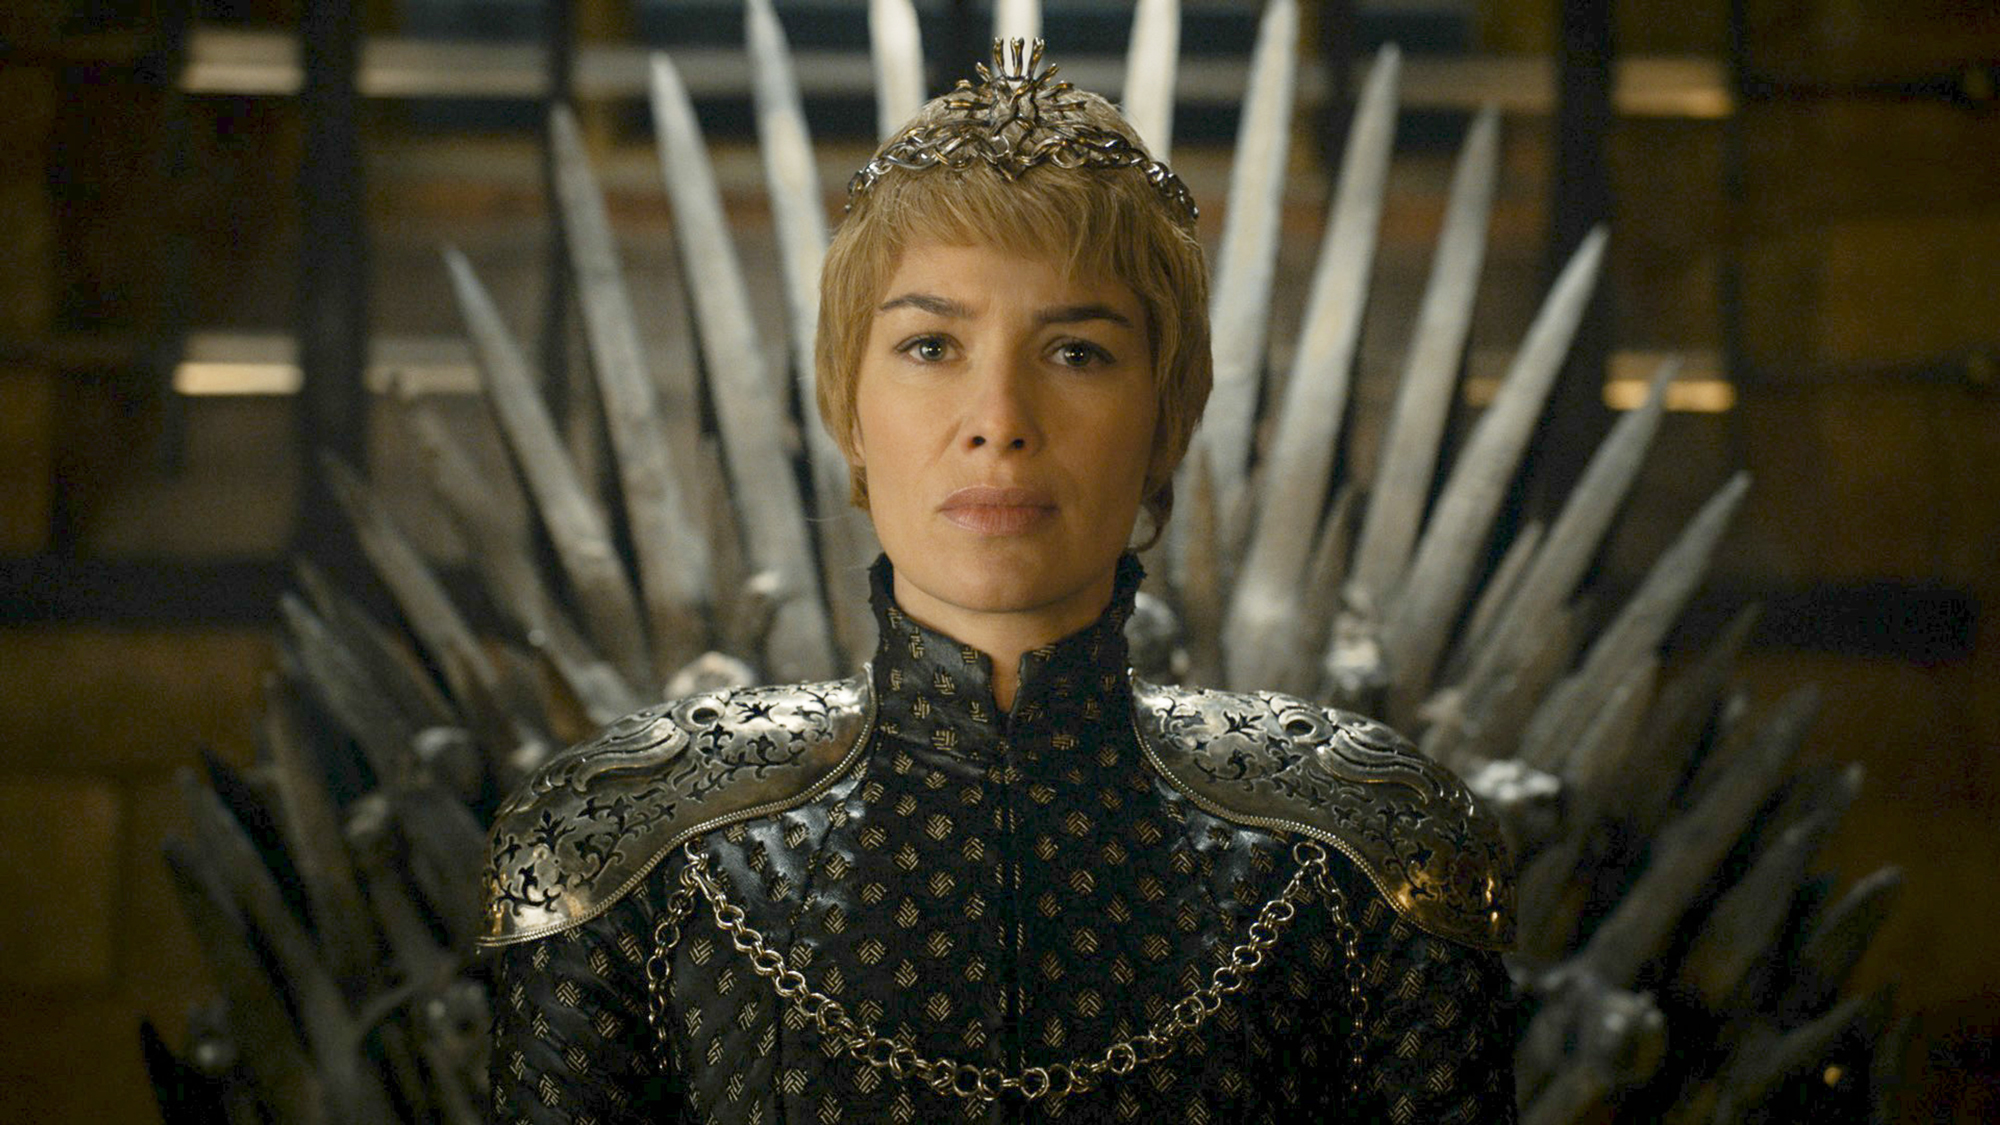 IKEA Dares Customers to Sit on the Iron Throne with a Hilarious <em>GoT</em> Display